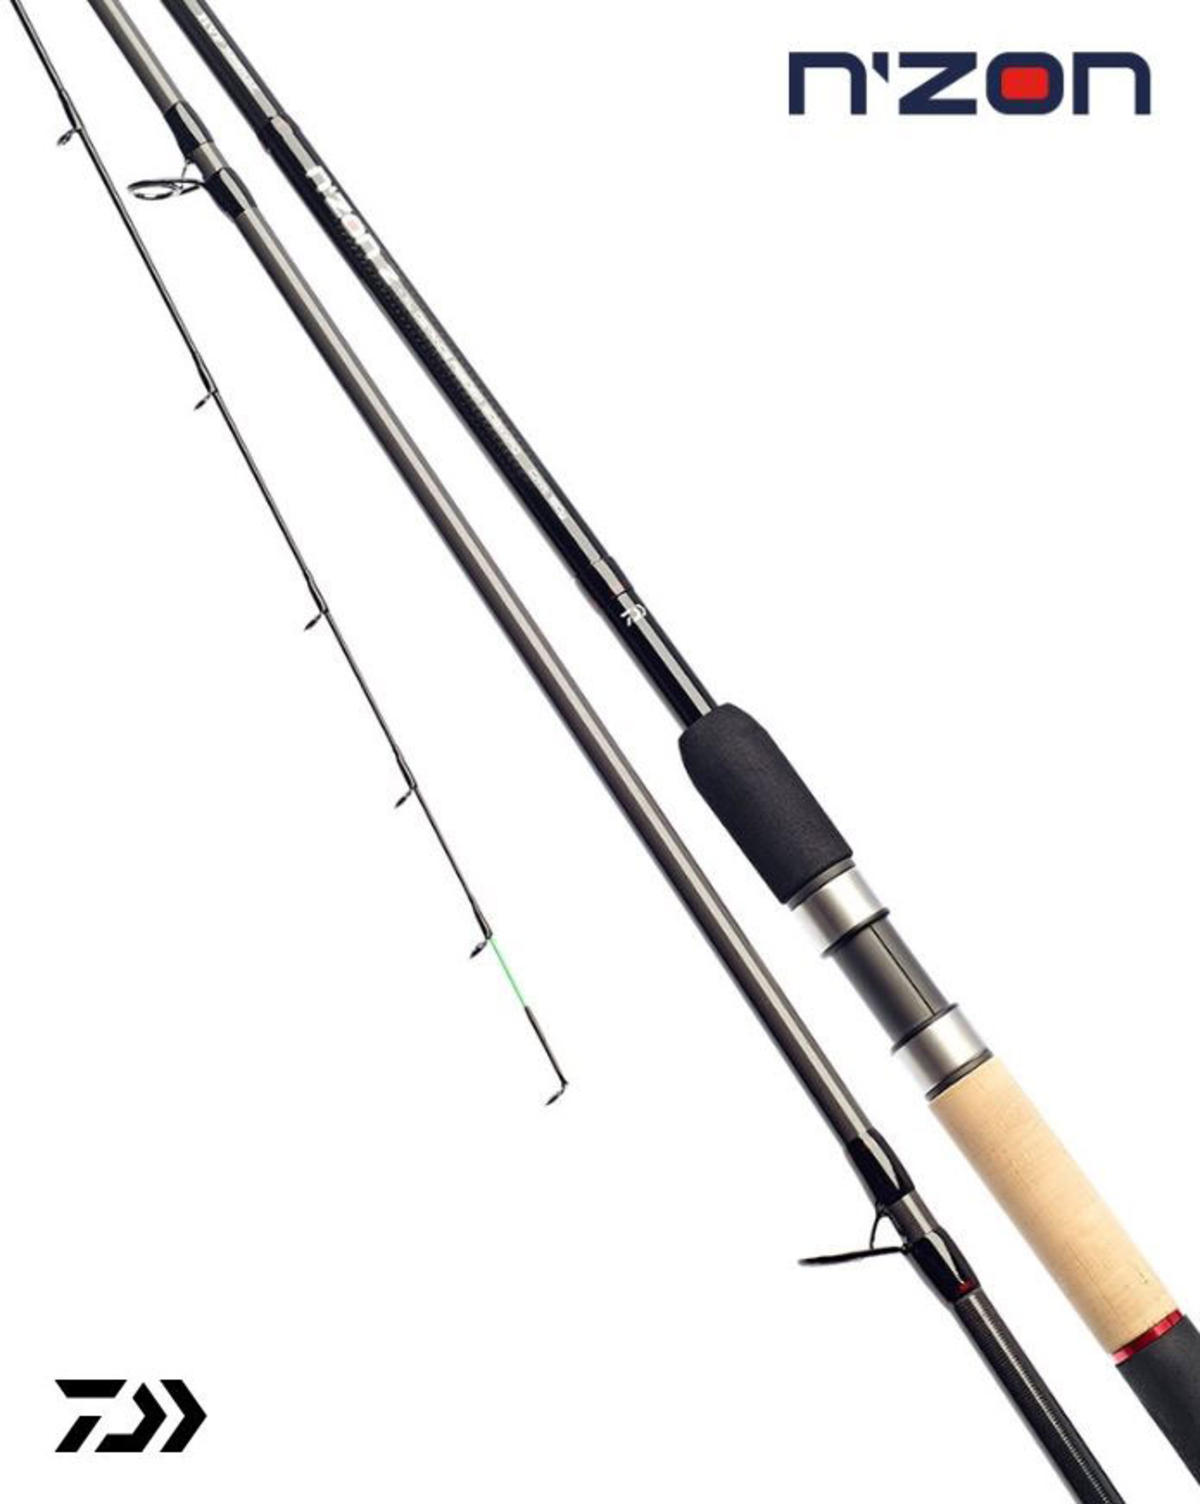 New Daiwa N'ZON Z Feeder / Quiver Fishing Rods - All Models